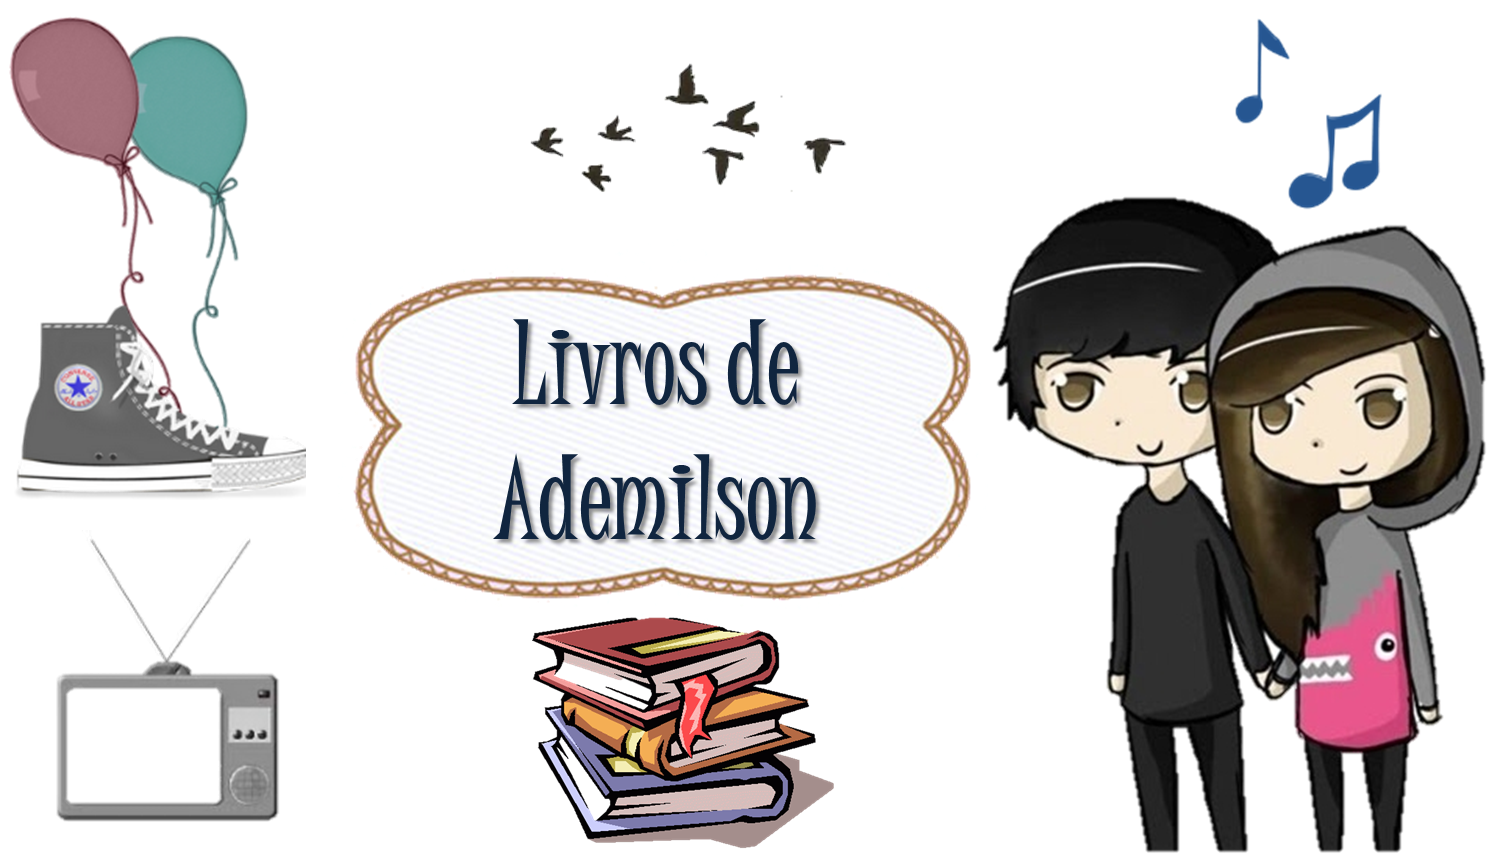 Livros de Ademilson - Livros, Sries, Msica, Filmes.